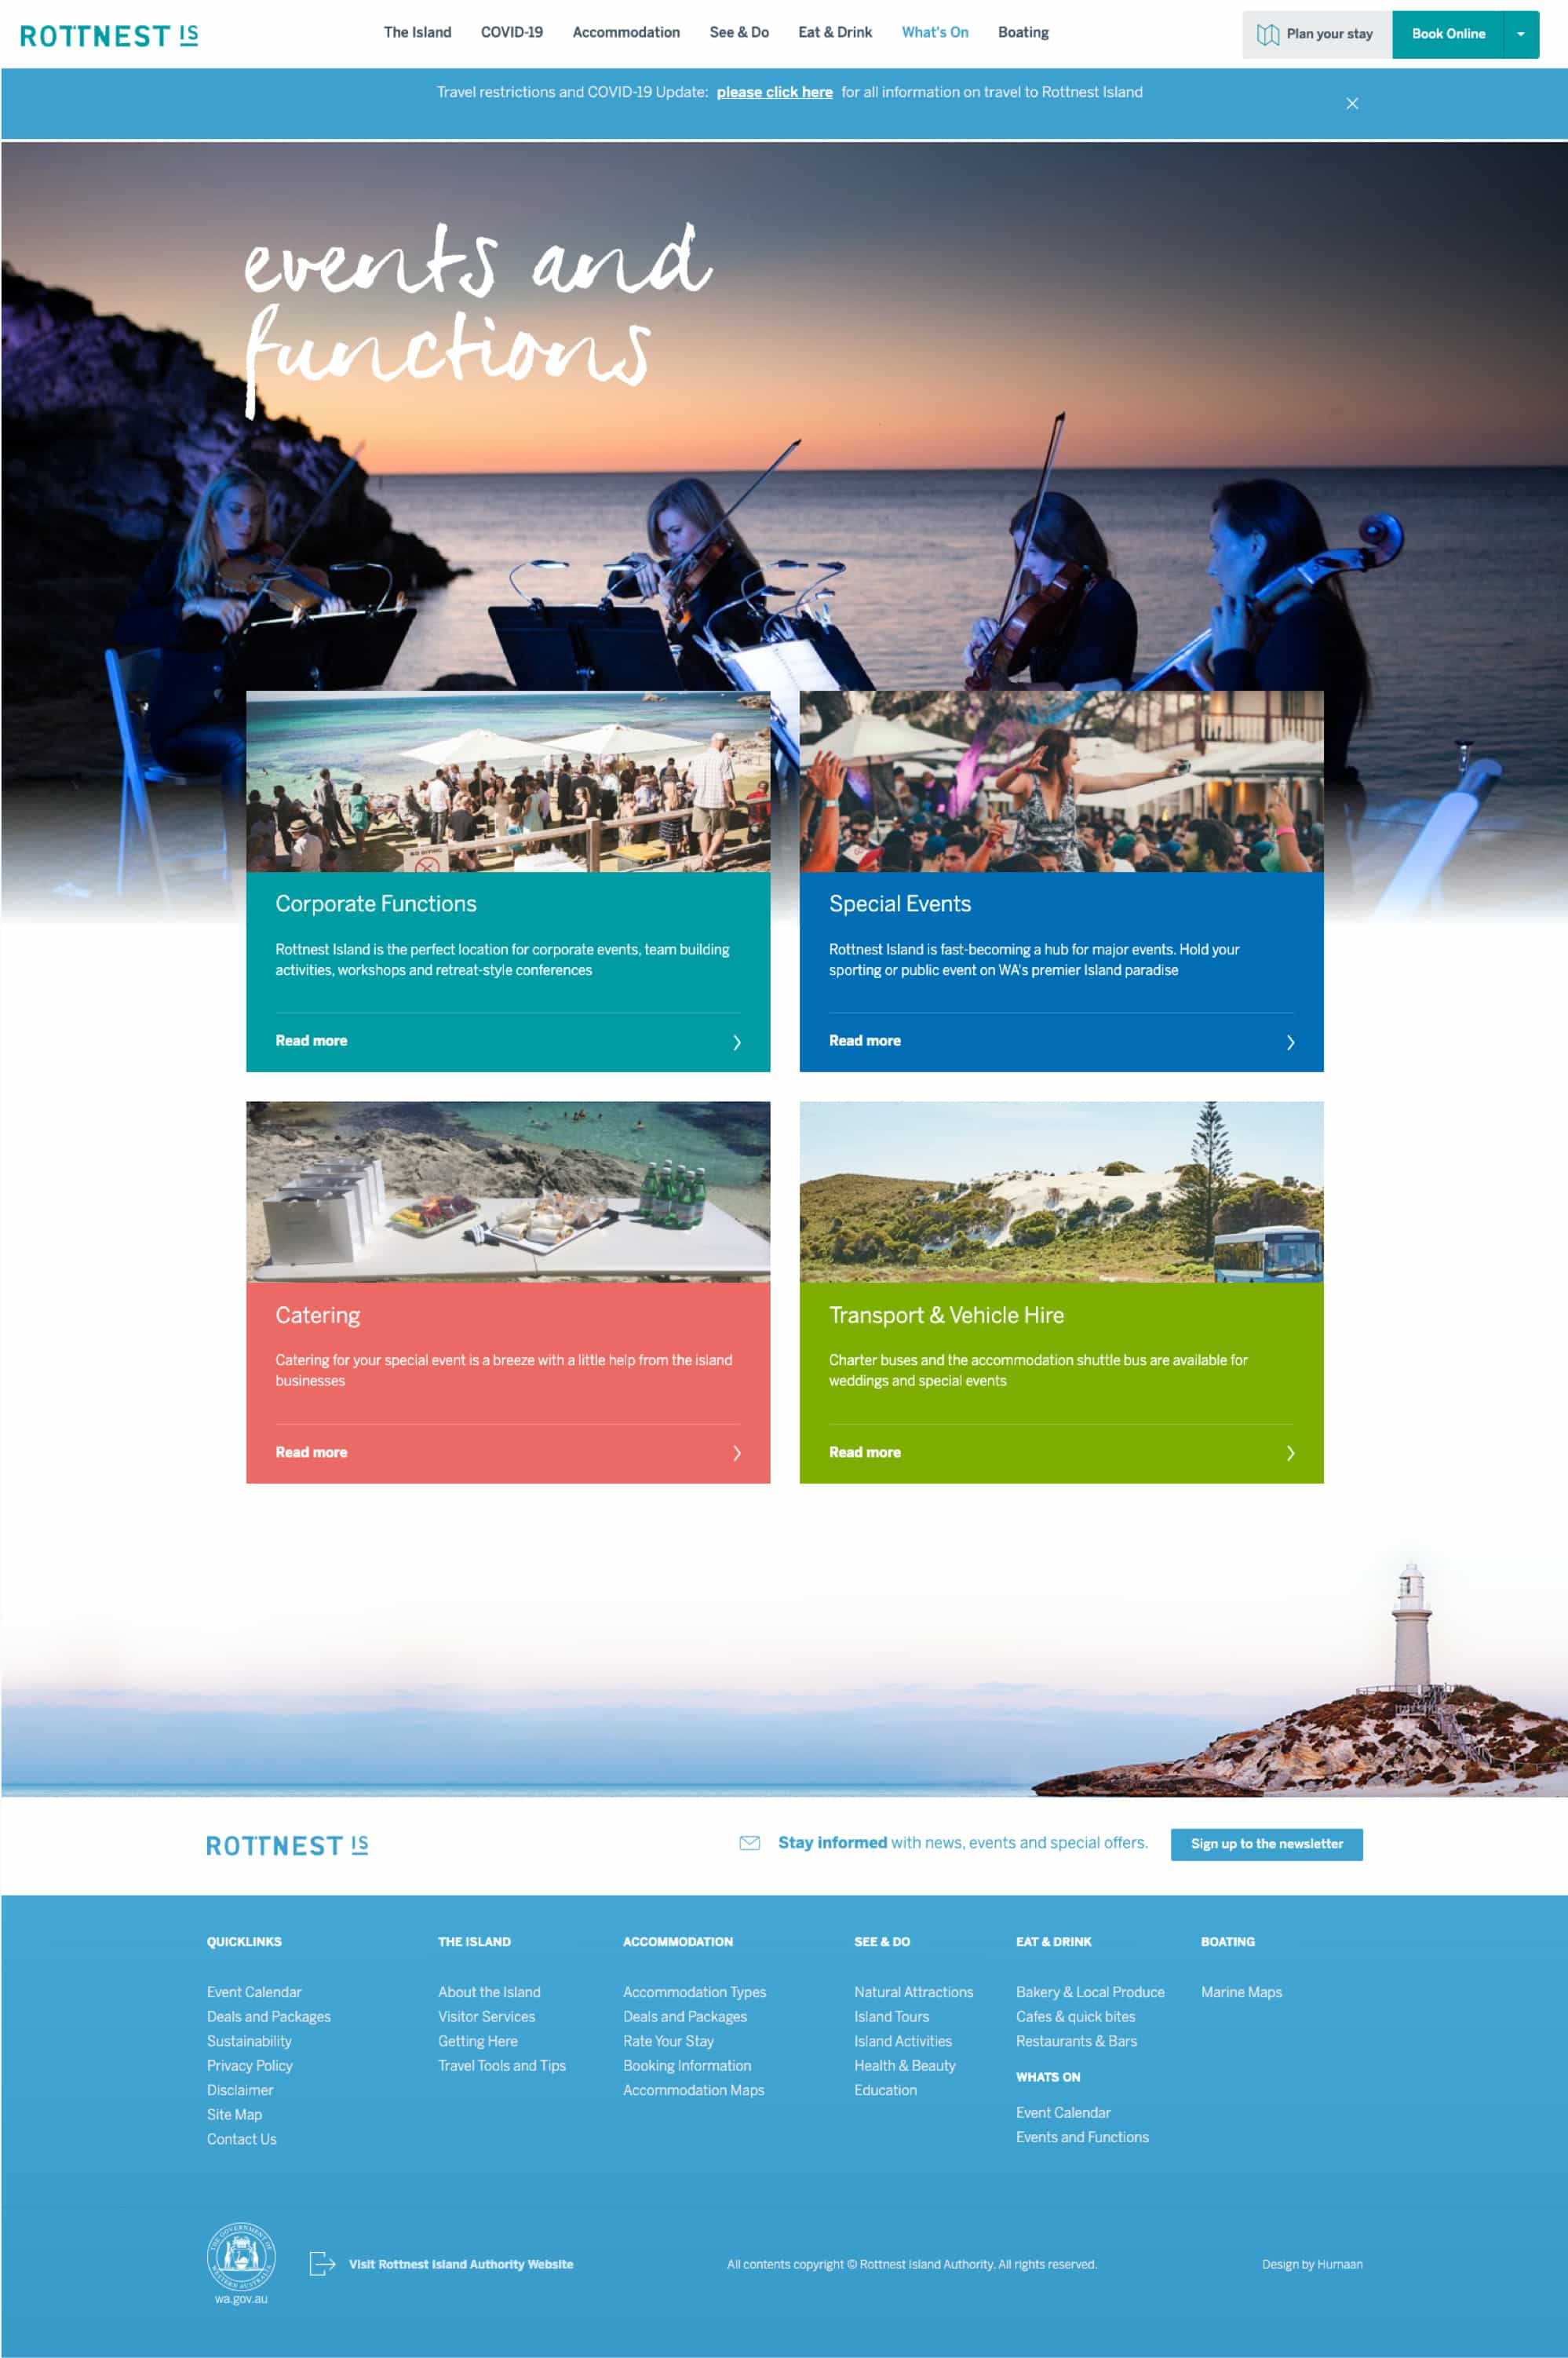 rottnest events and functions page